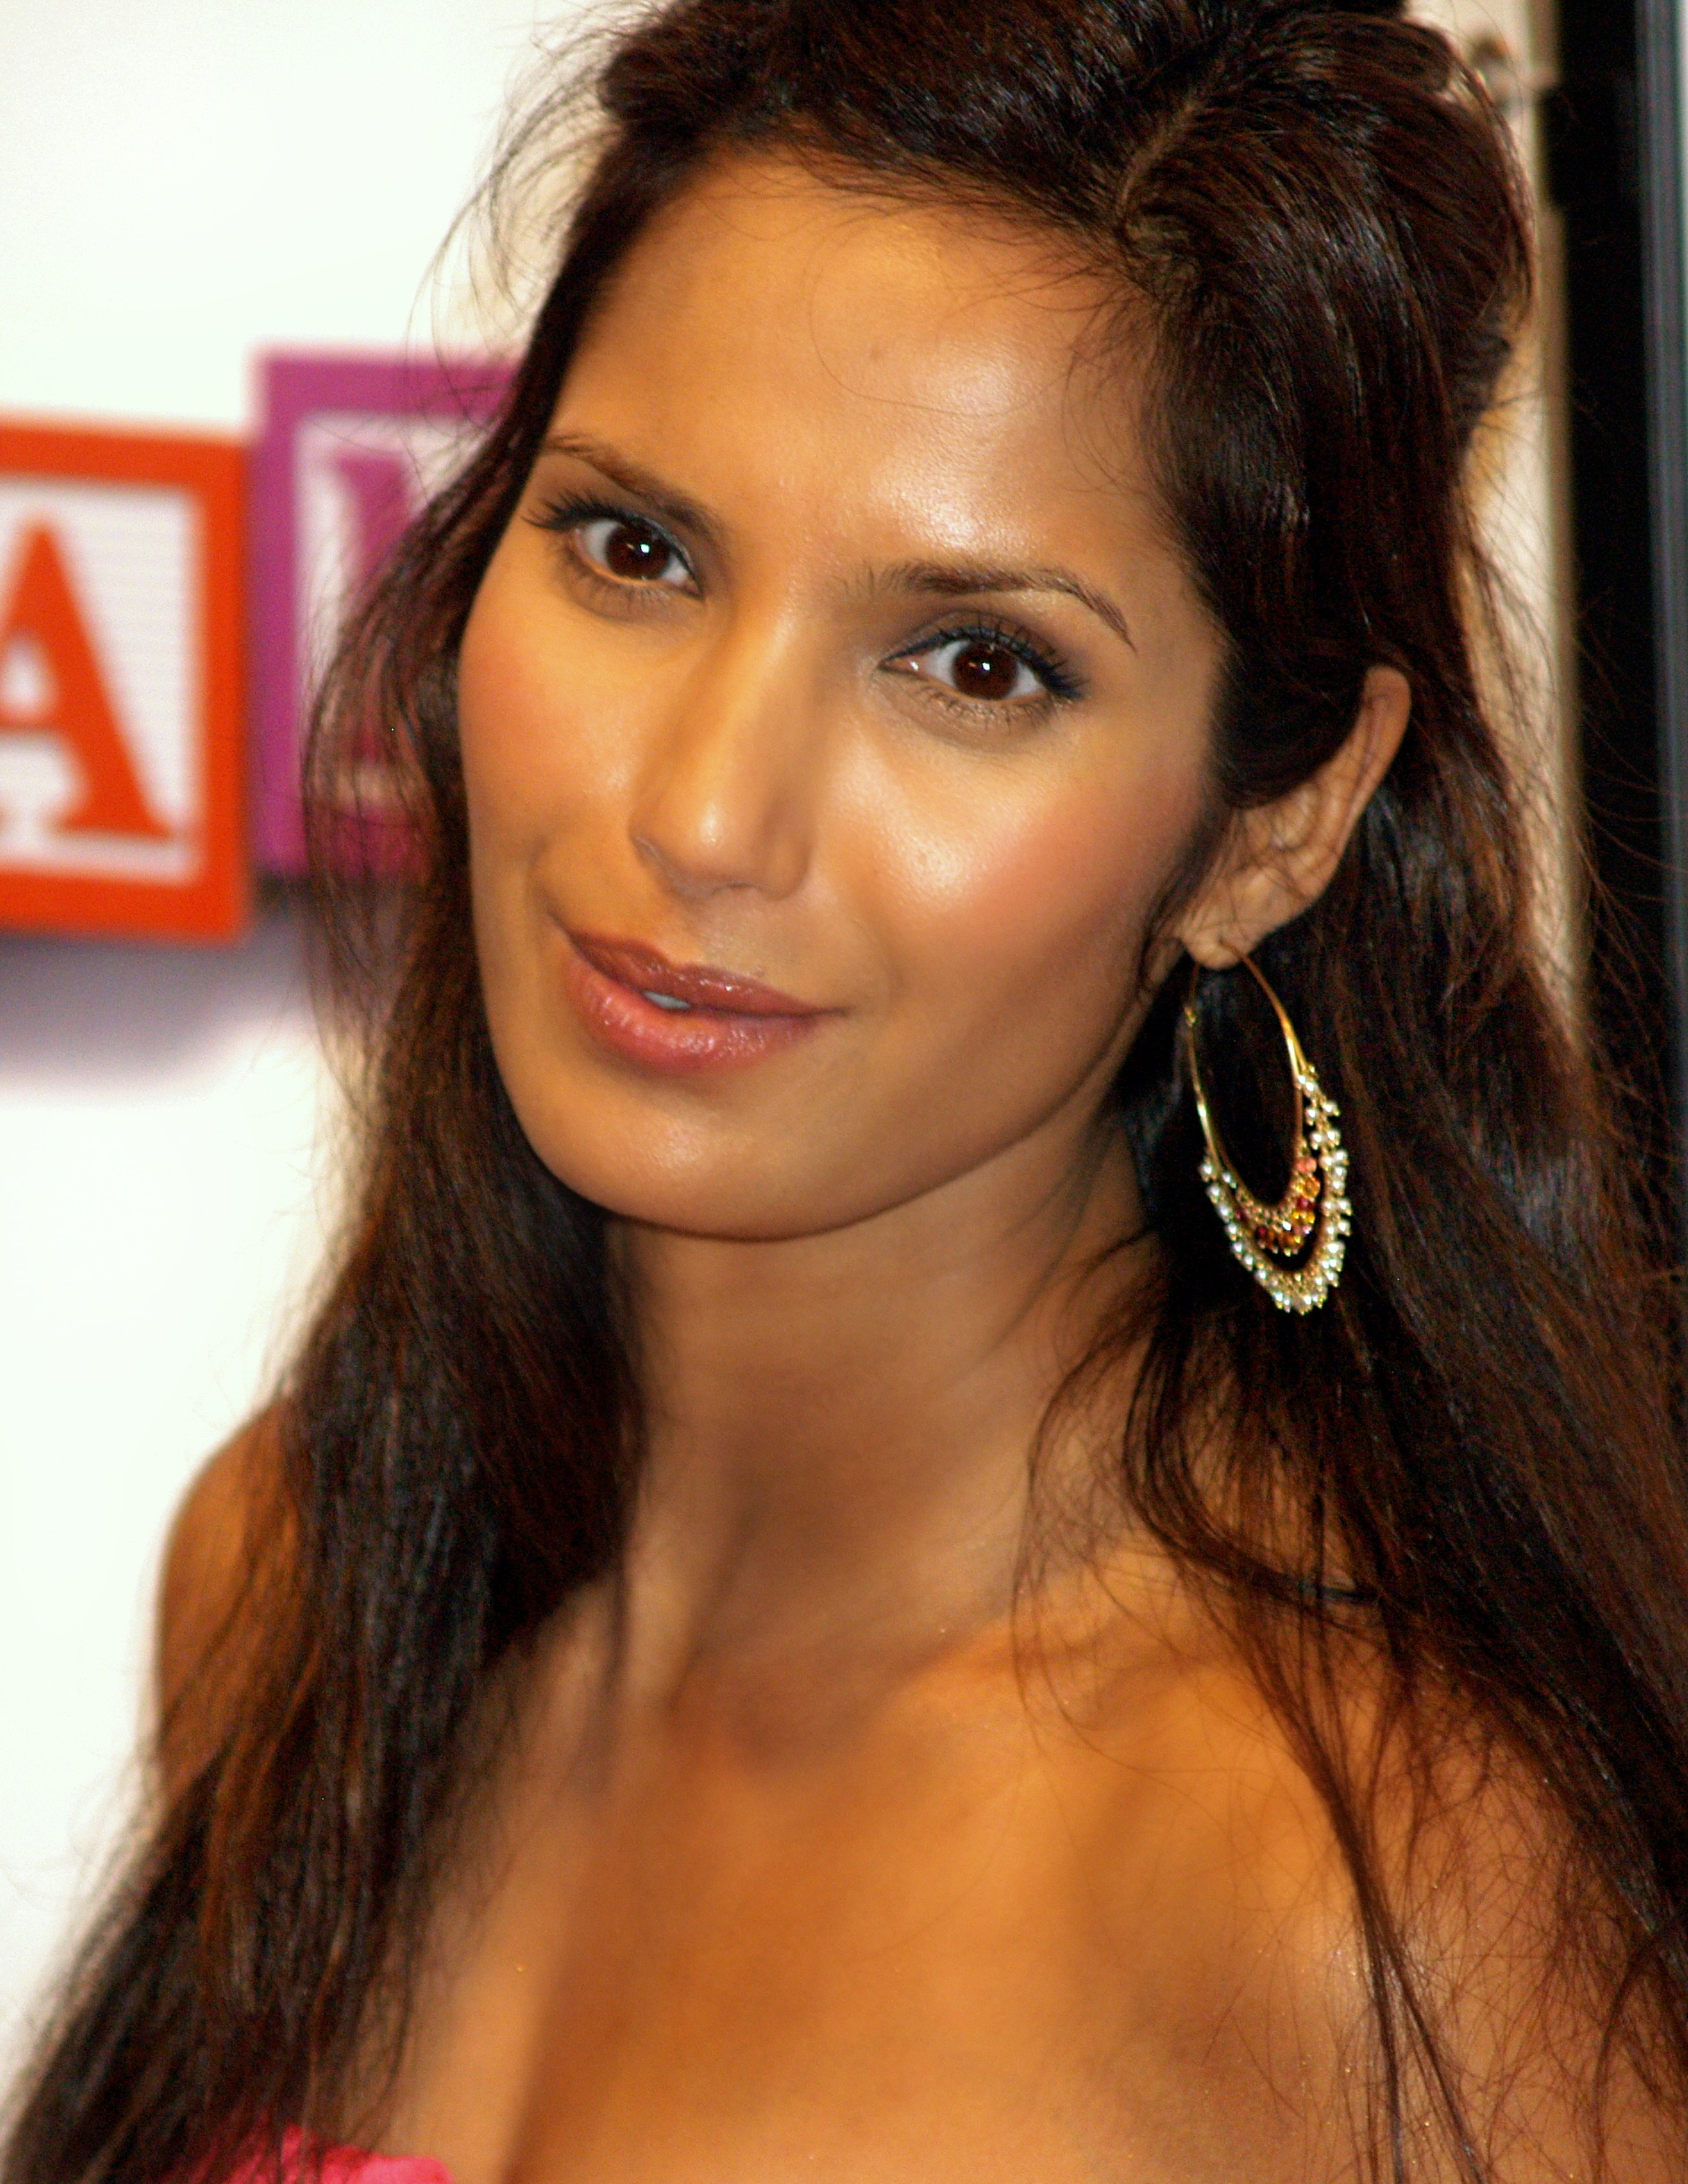 nudes Padma Lakshmi (86 photos) Hot, Facebook, butt